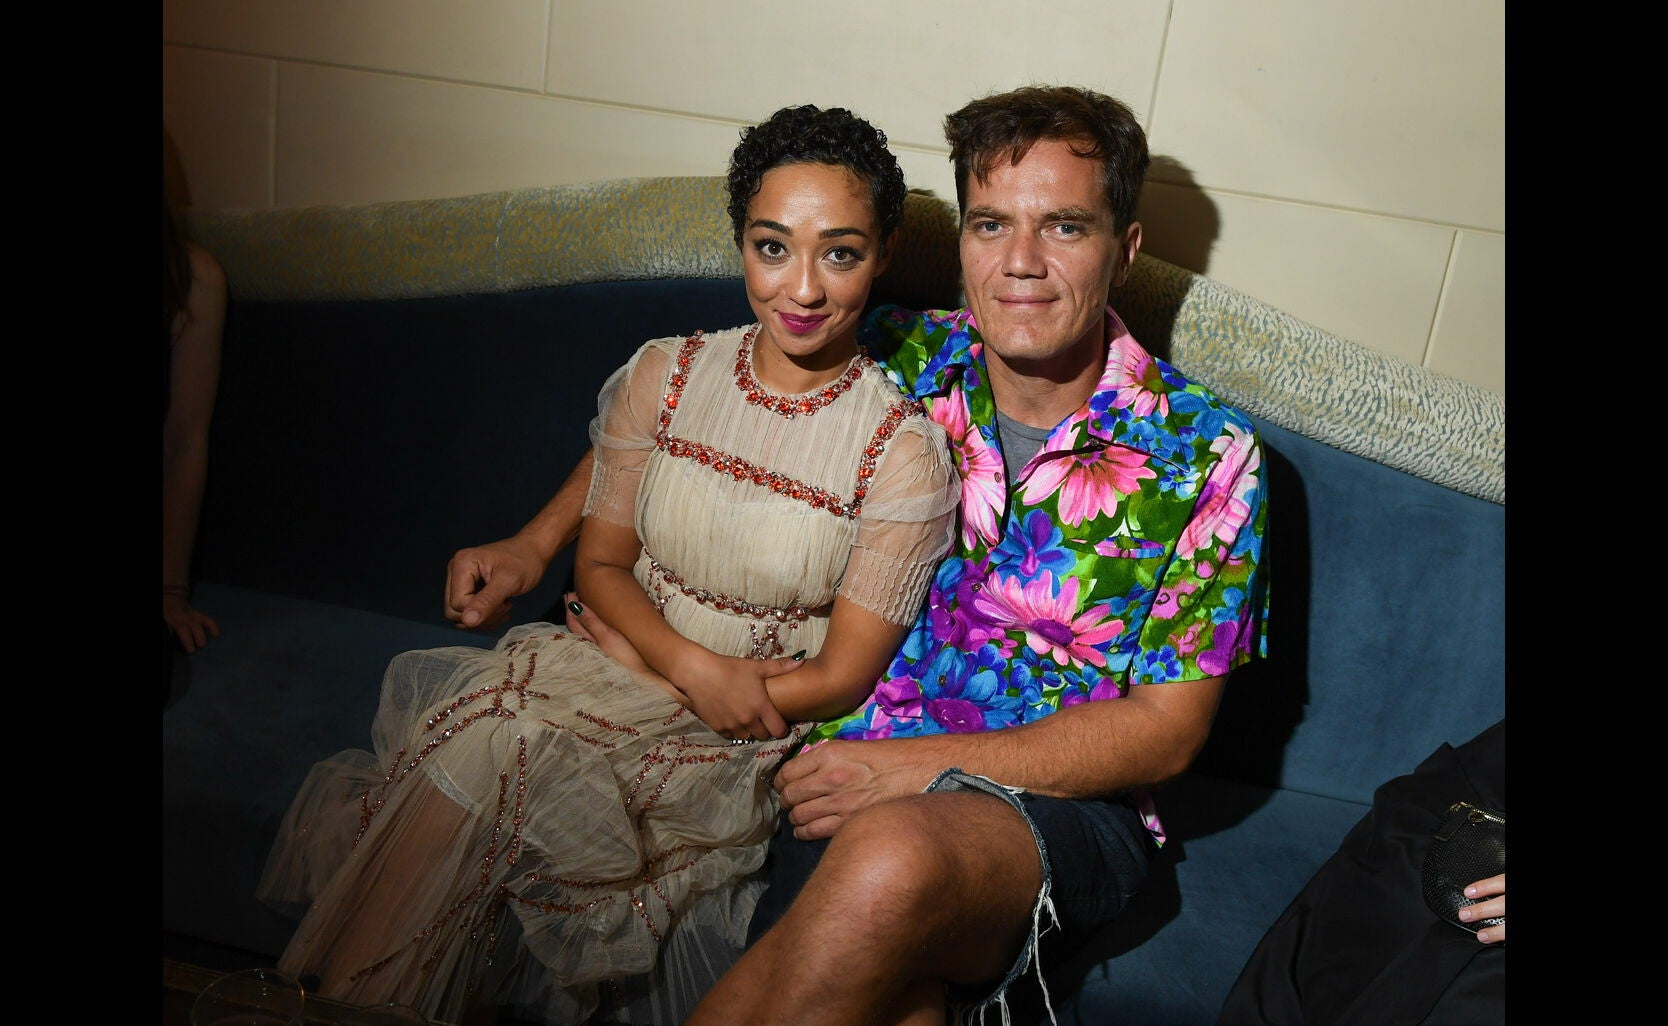 Michael Shannon and Ruth Negga at the HFPA/InStyle party, Toronto 2016